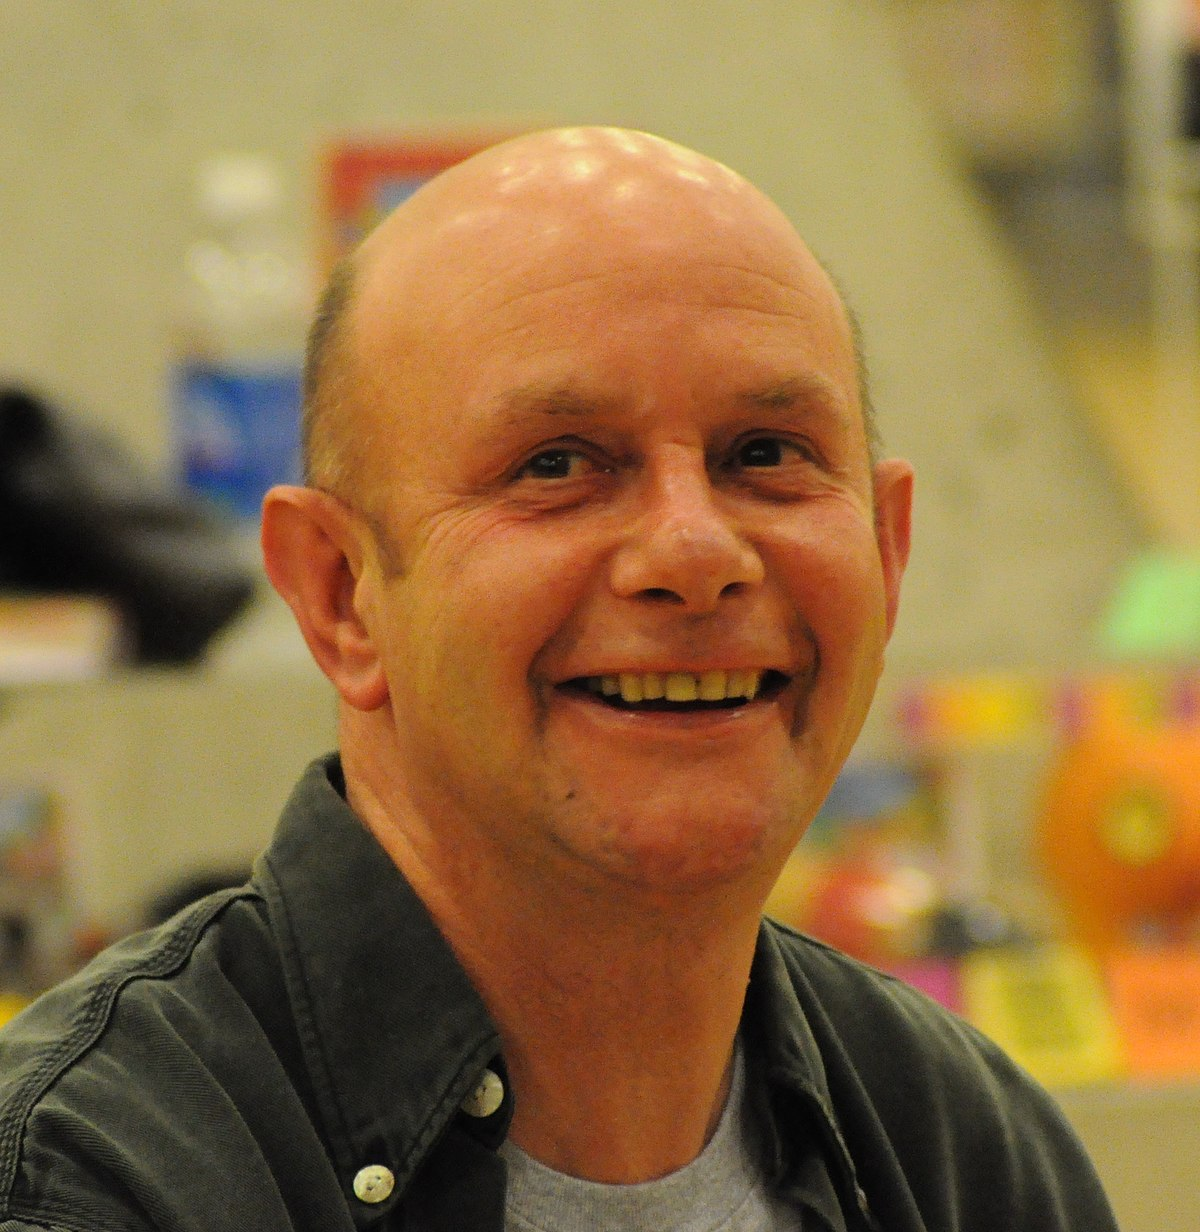 Nick Hornby Wikipedia